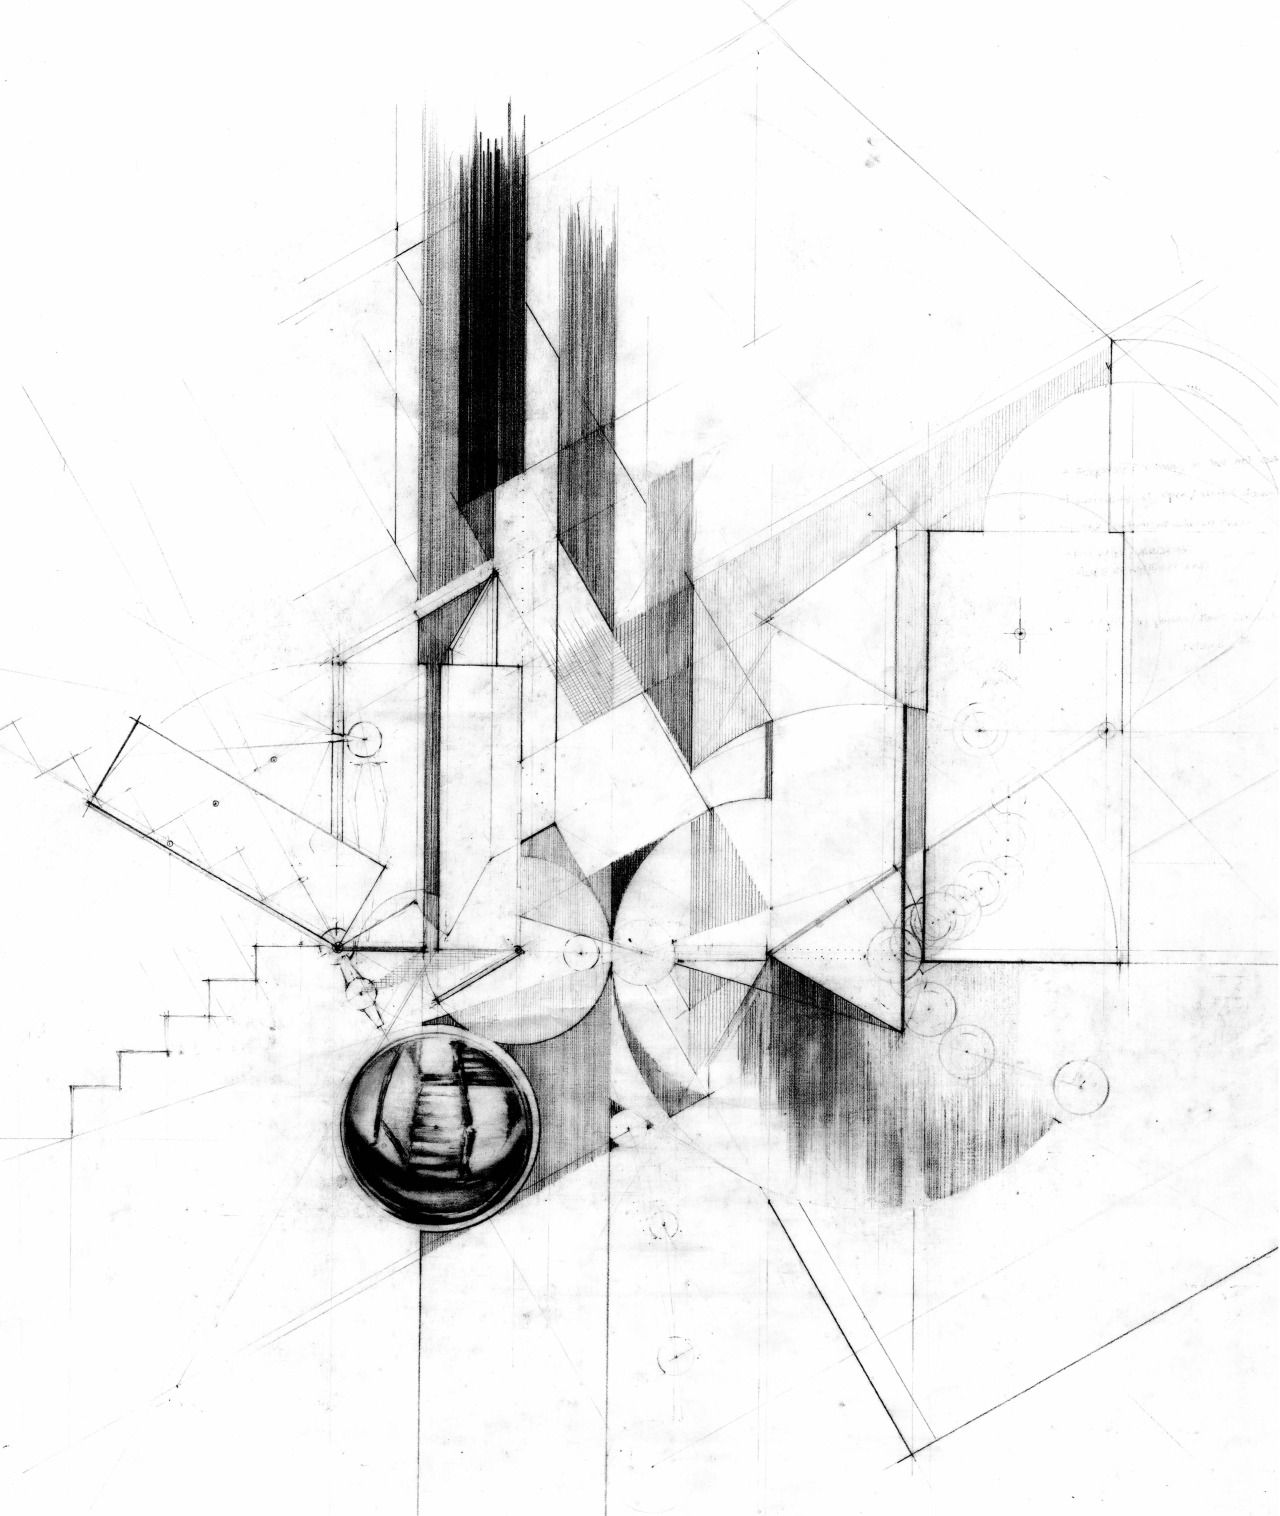 Pin By Alastair Wallace On Architectural Drawings